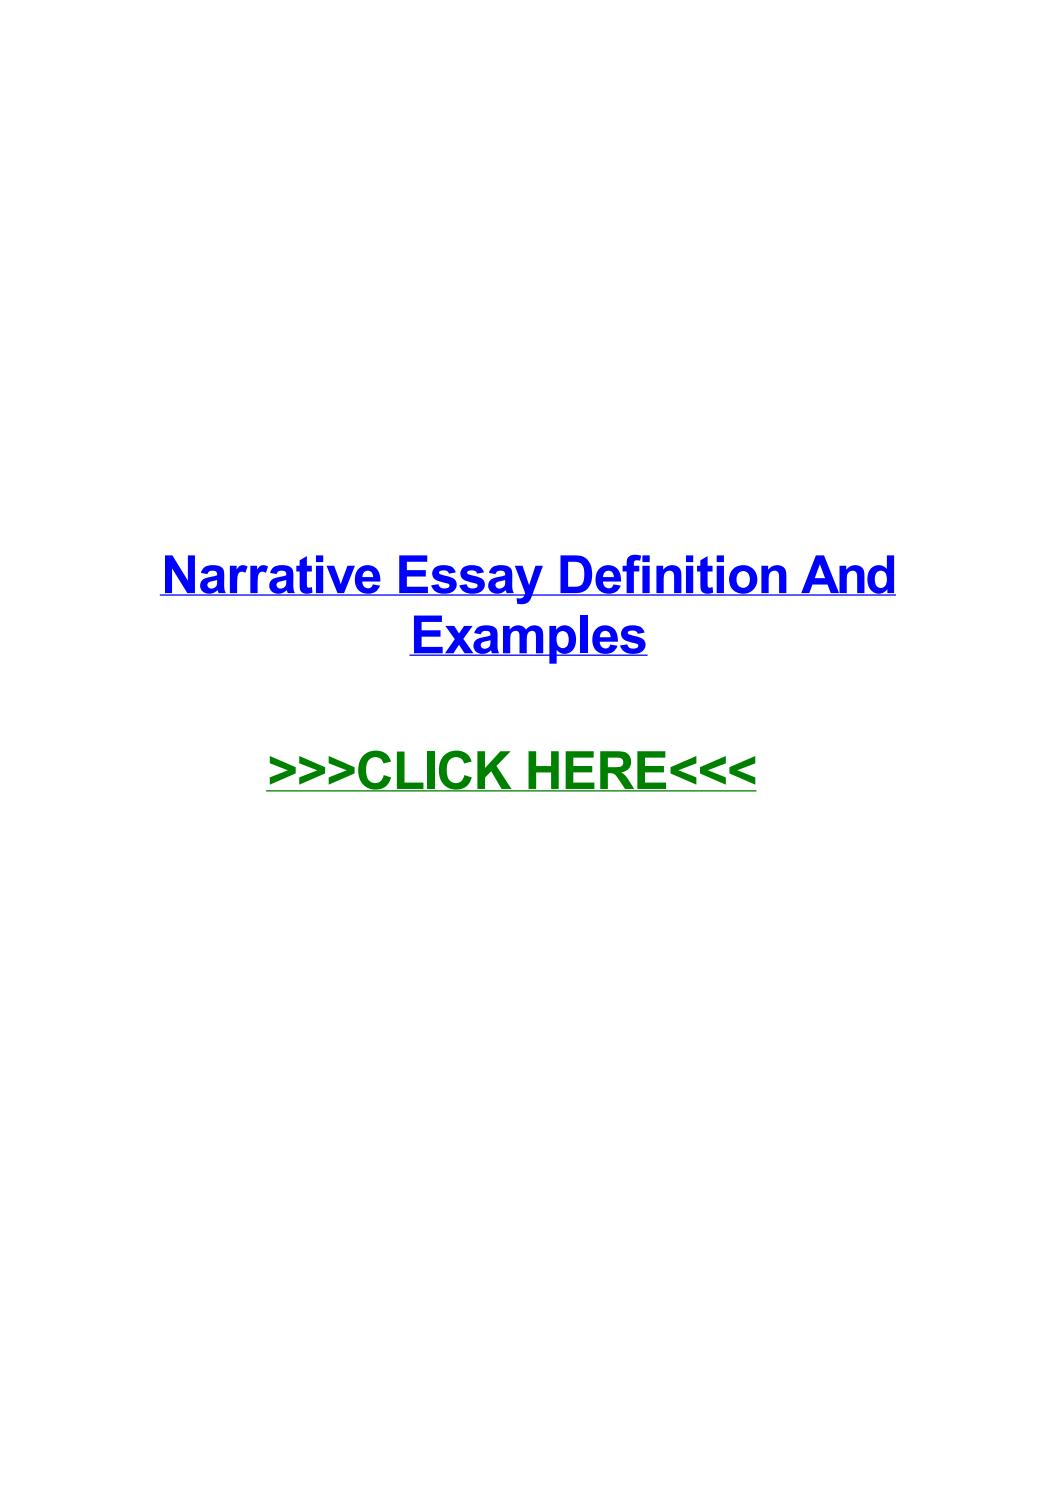 014 Narrative Essay Definition Example Page 1 Stunning Literature Meaning Full